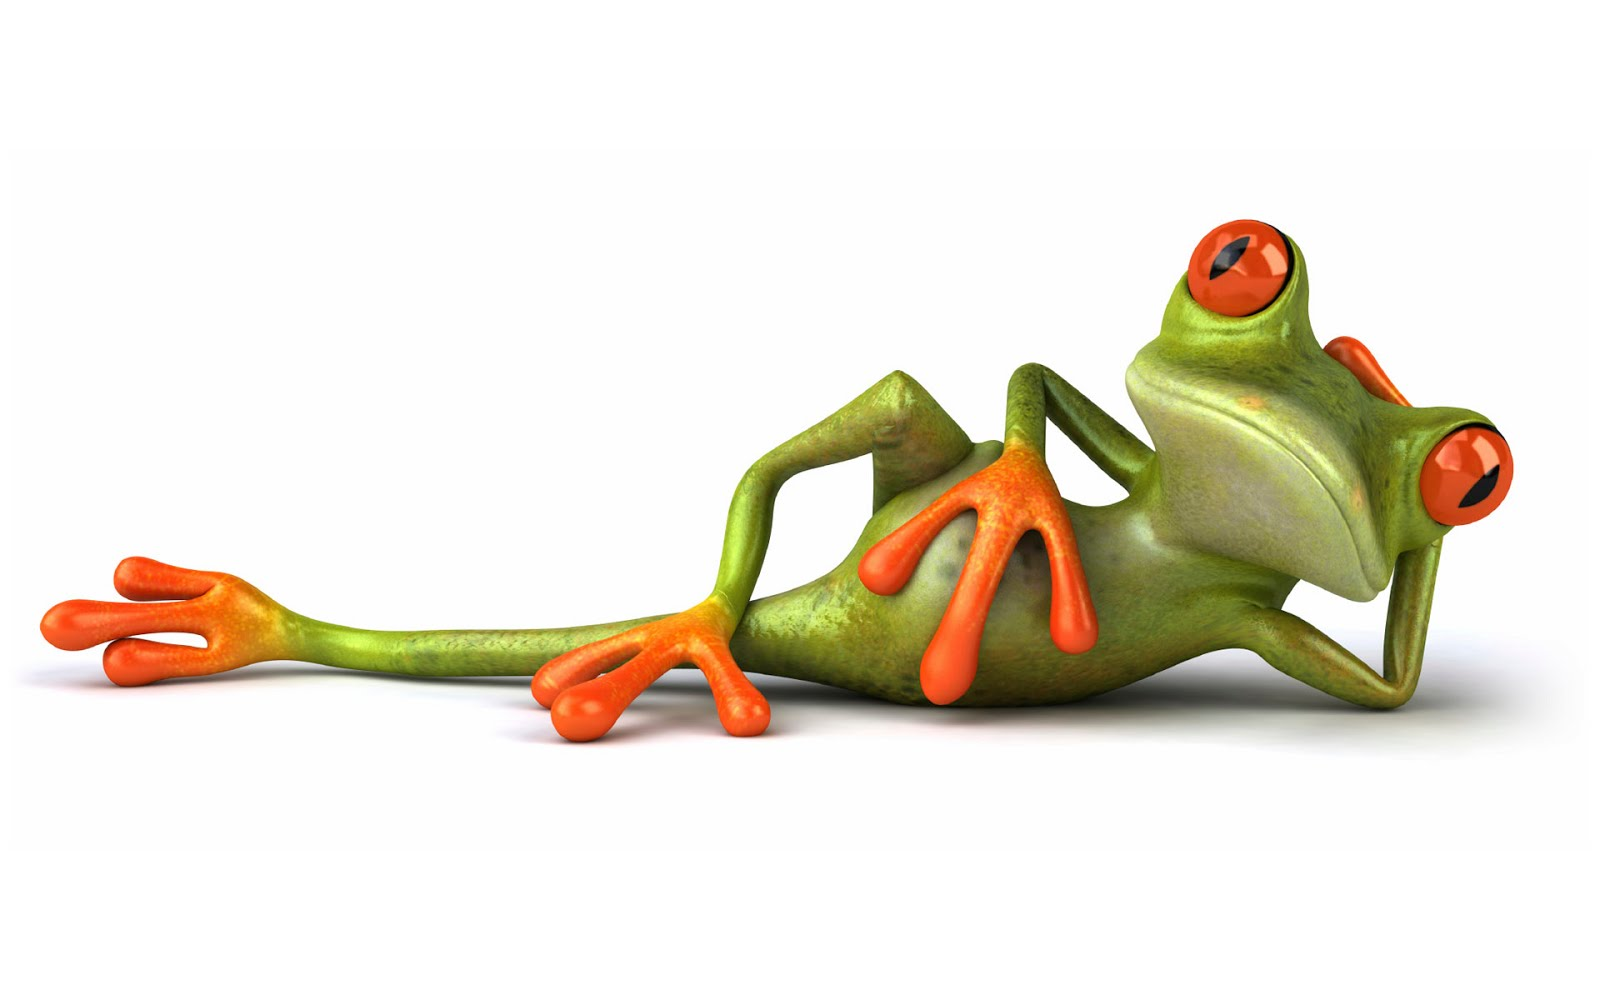 Cartoon Frogs Wallpaper Cartoon Images 1600x1000